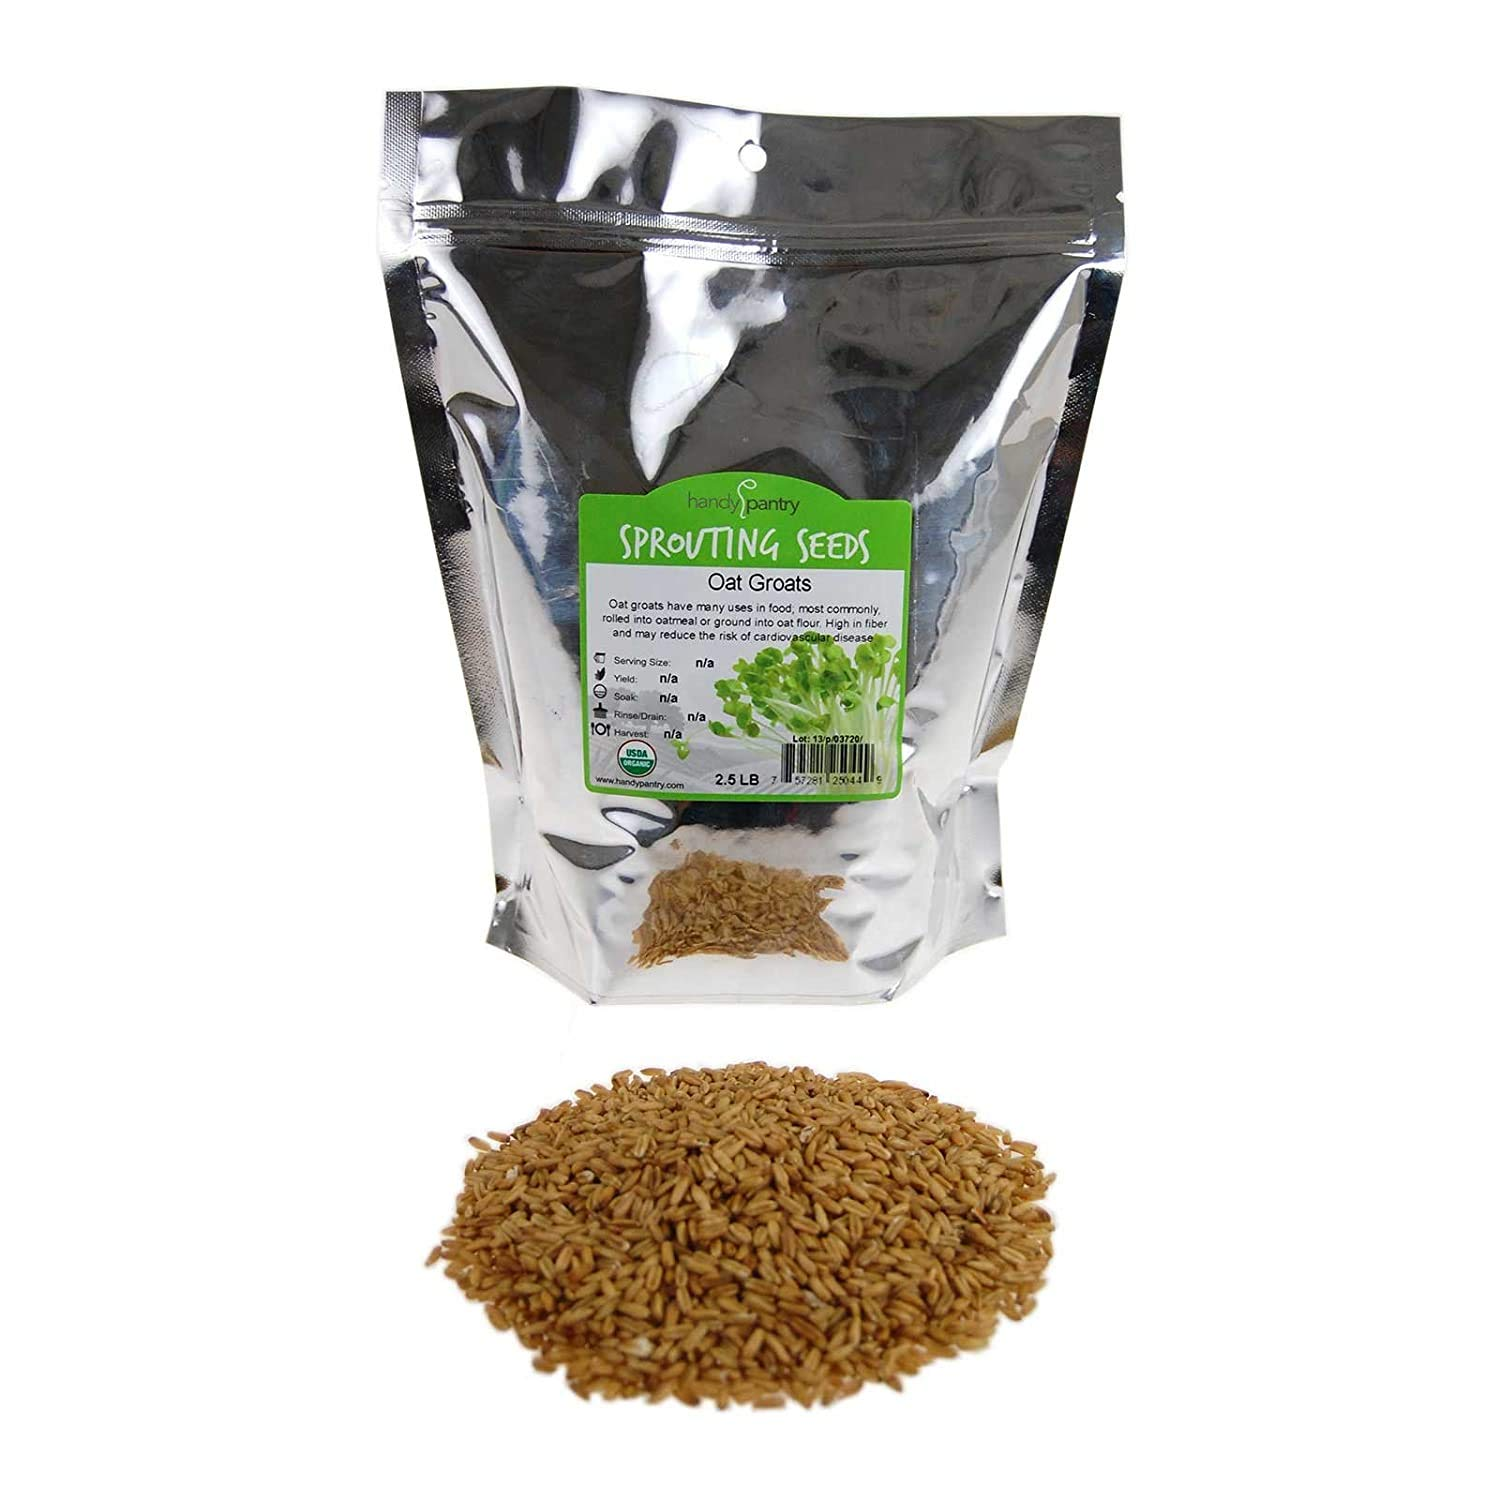 Organic Hulled Oat Groats (Hull Removed): 2 Lbs - Non-GMO Oats - Cereal Grain - Emergency Food Storage, Grains, Rolling for Oatmeal, & More